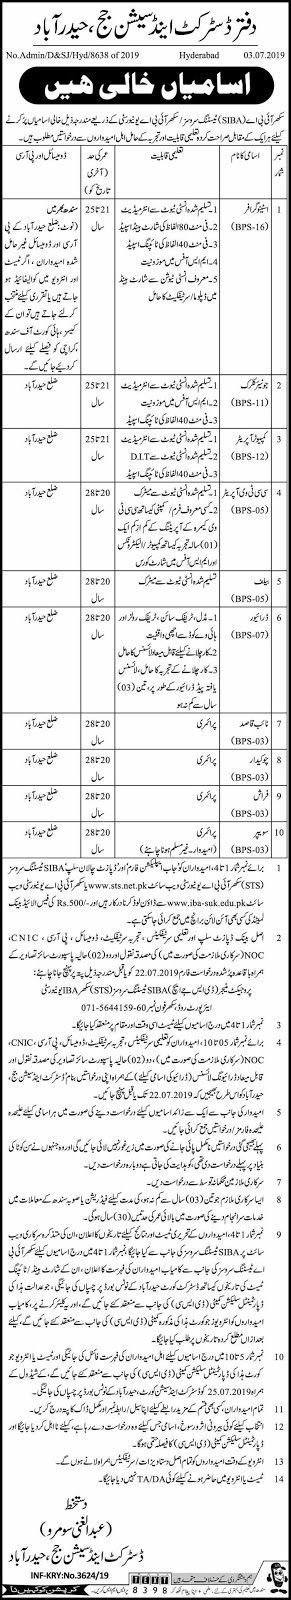 District And Session Judge Hyderabad 05 Jul 2019 Jobs